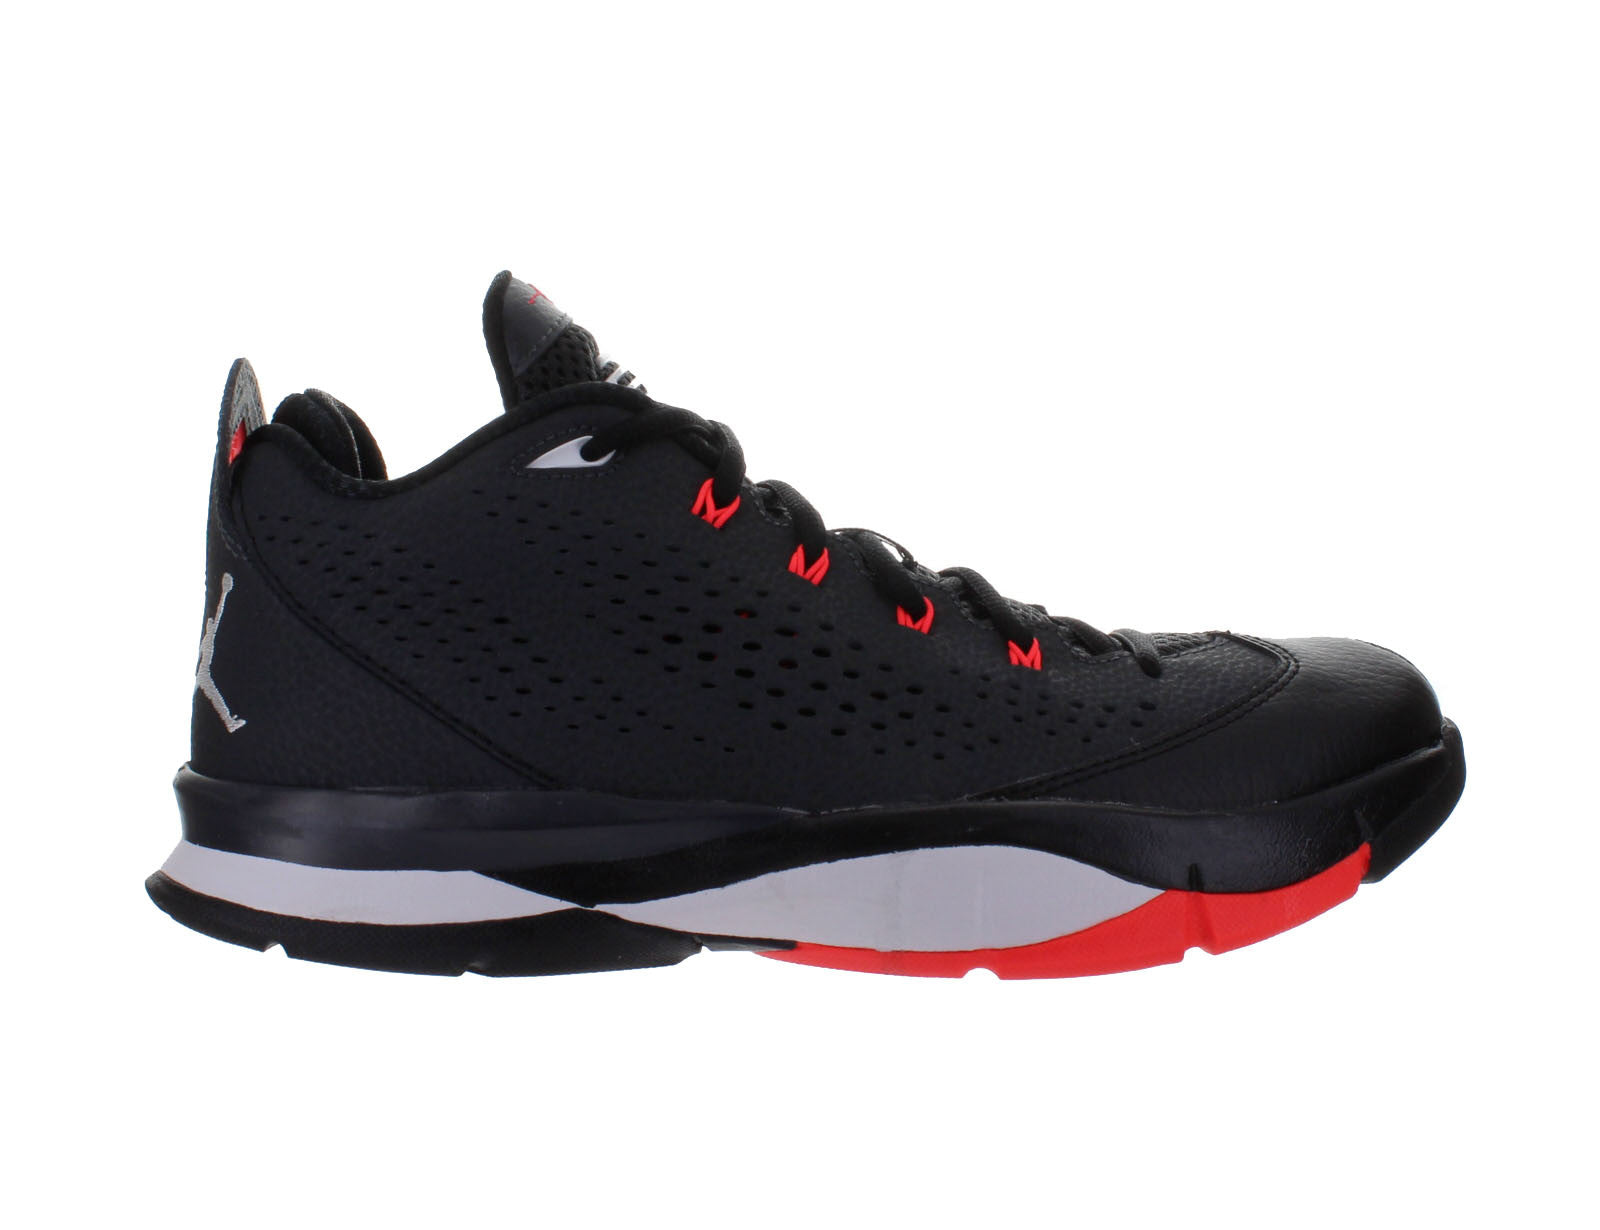 491d64aa6b2 Details about Kids Air Jordan CP3.VII GS Anthracite White Black Infrared 23  616807-005